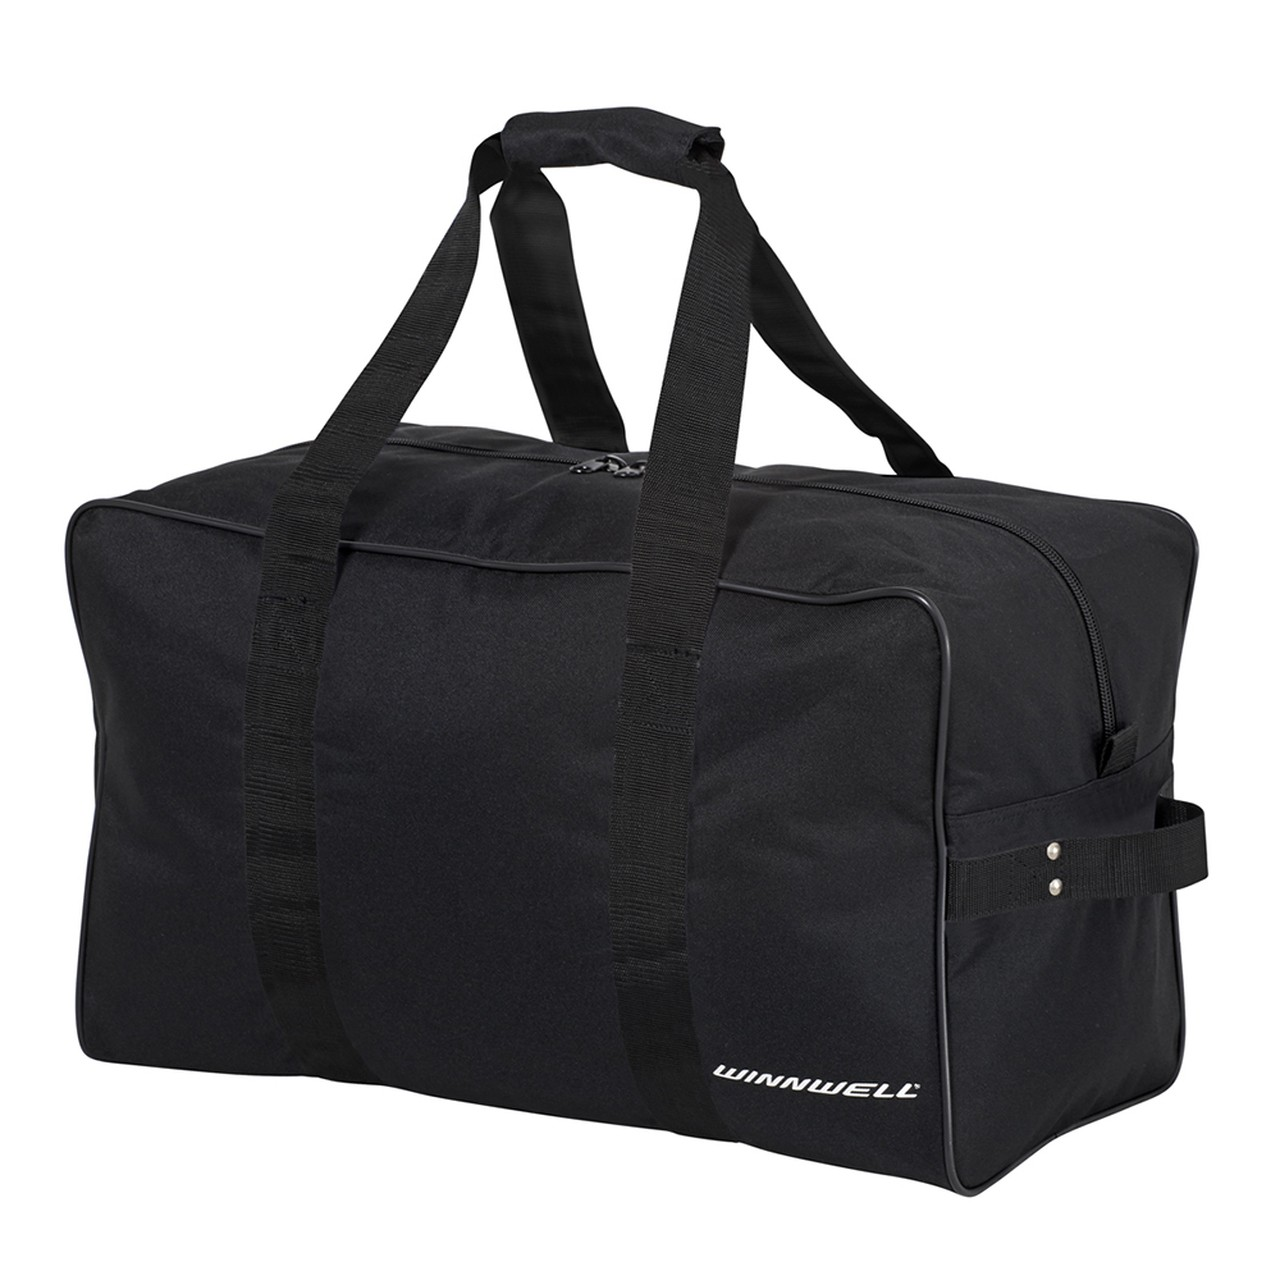 WINNWELL Senior Equipment Basic Carry Bag